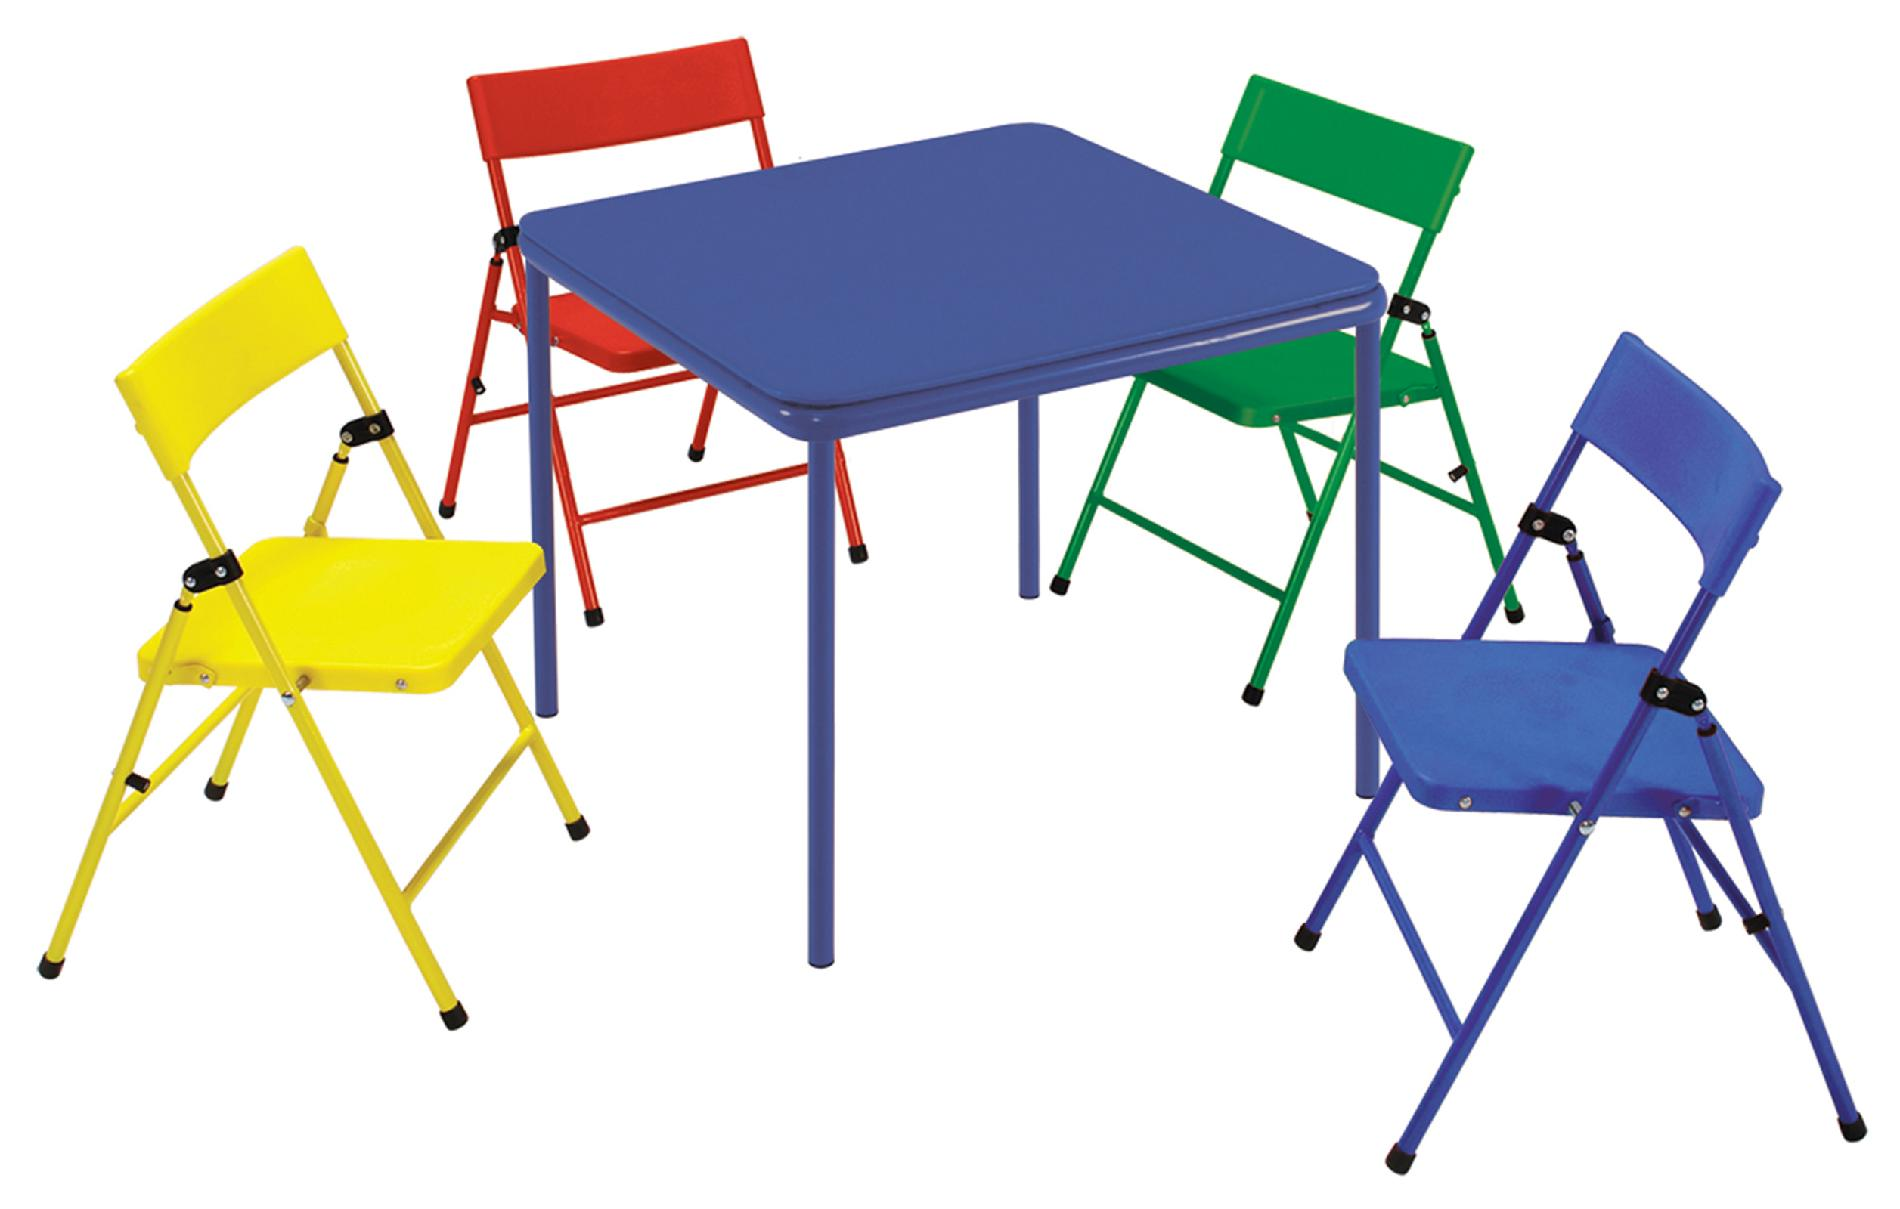 Cosco Home and Office Products Kid's 5 Piece Folding Chair and Table Set